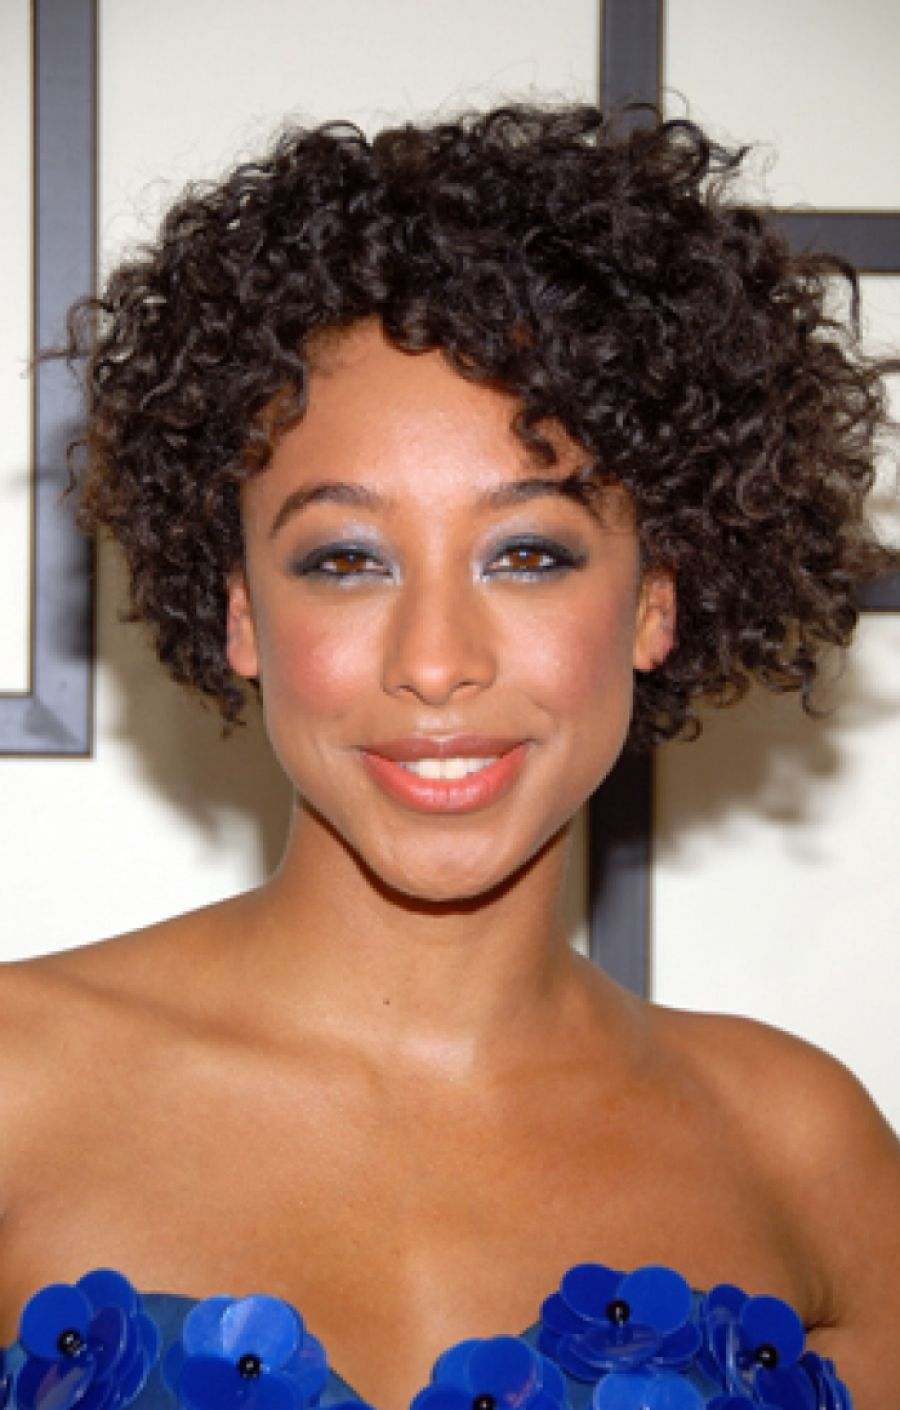 Outstanding Pictures Of Natural Hairstyles For Black Women Short Hairstyles For Black Women Fulllsitofus